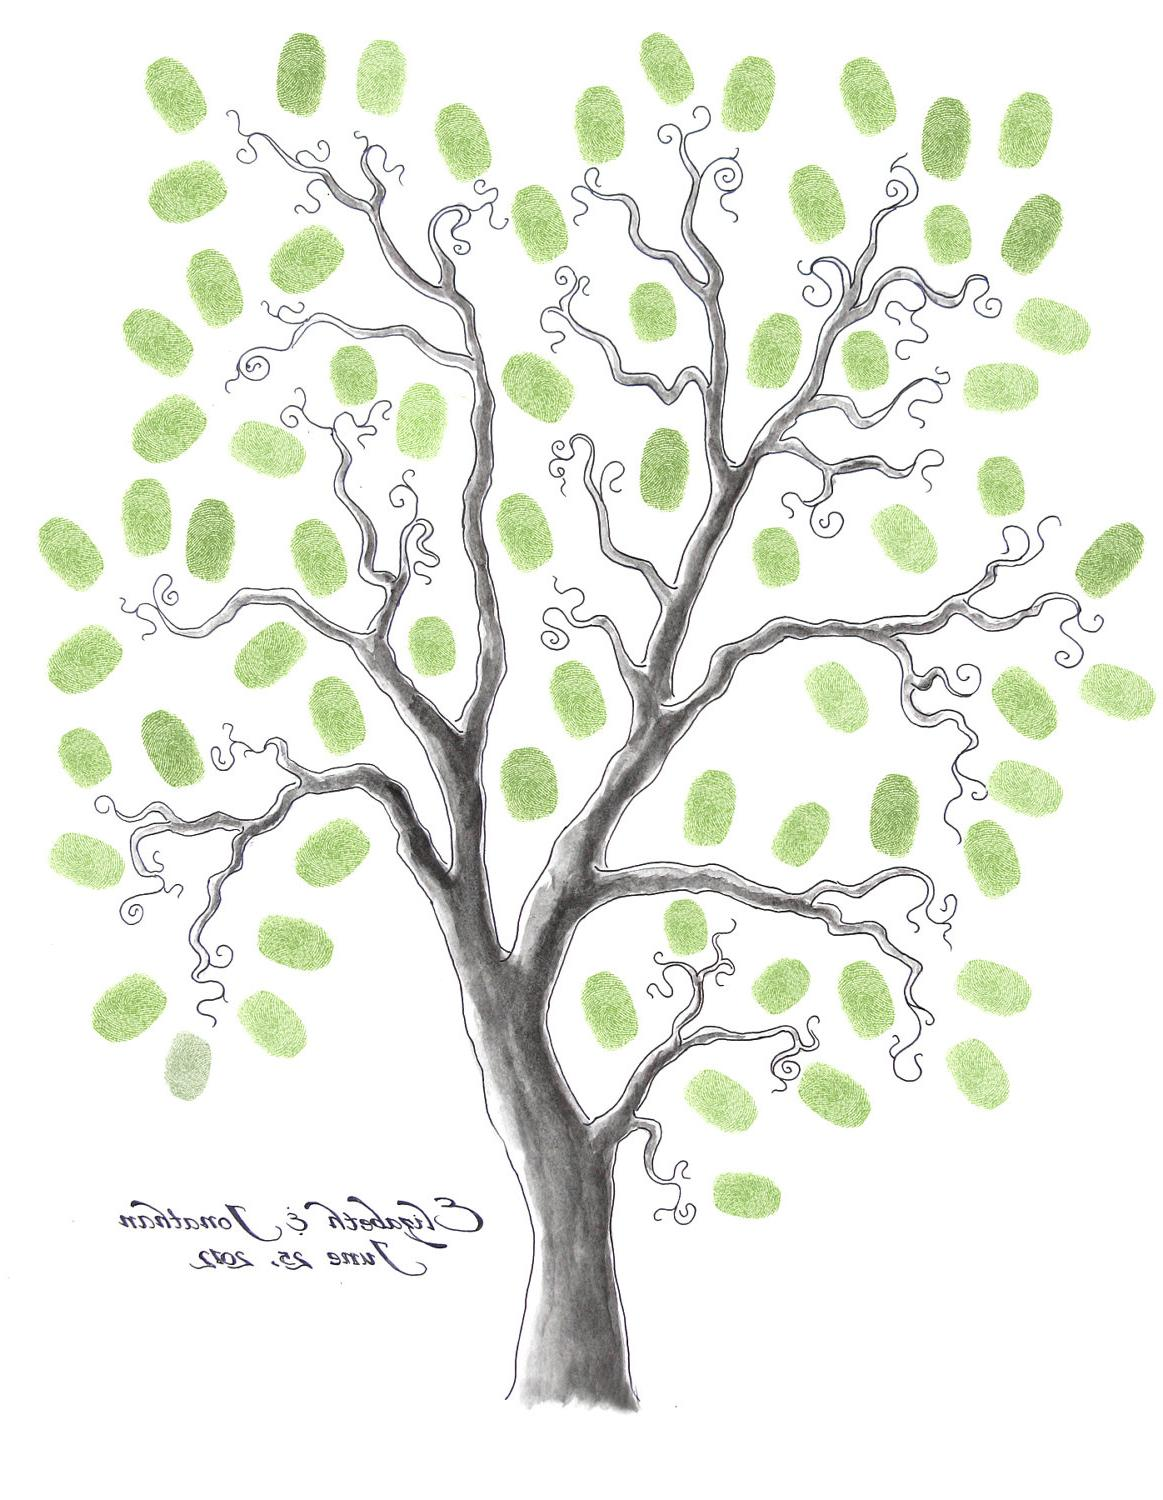 16 x 20 WEDDING TREE GUEST